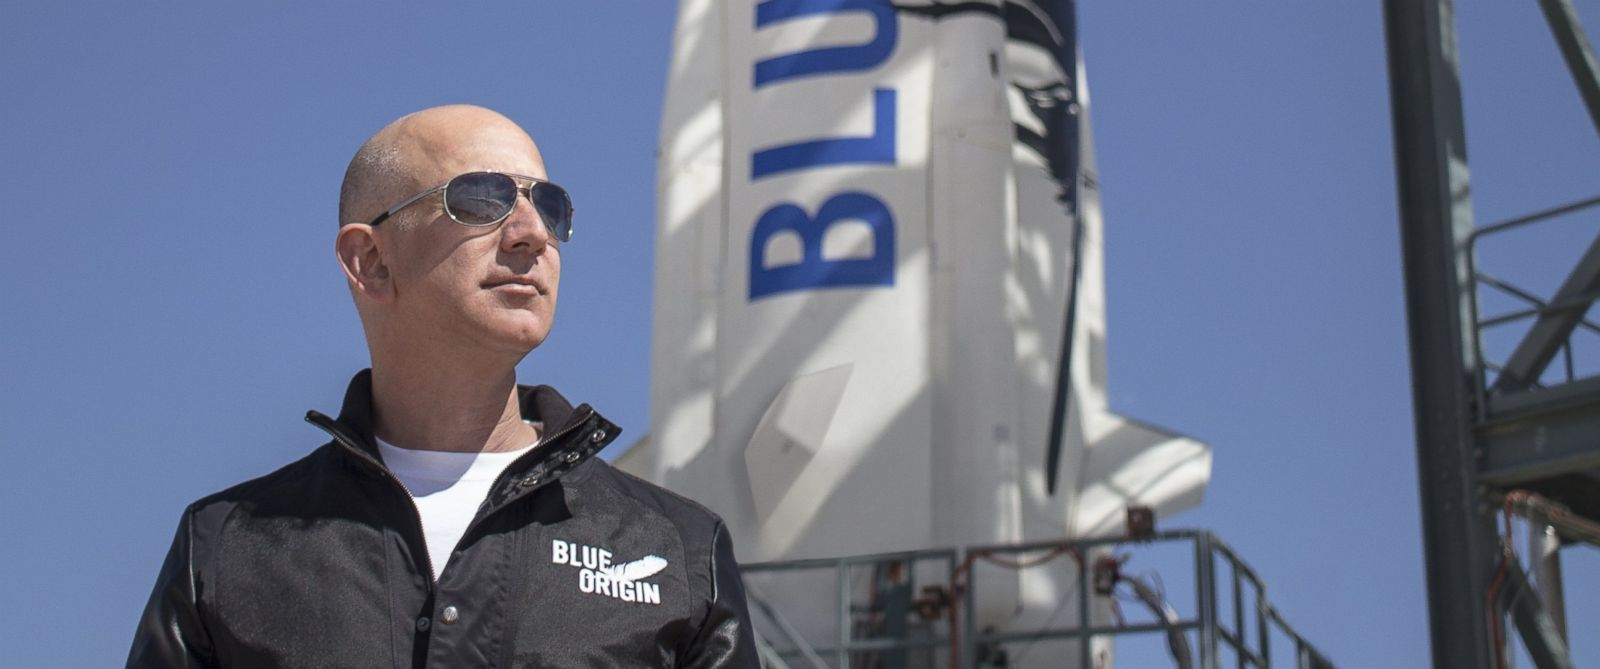 PHOTO:Jeff Bezos, Founder Of Blue Origin Aerospace, is pictured in this undated file photo.